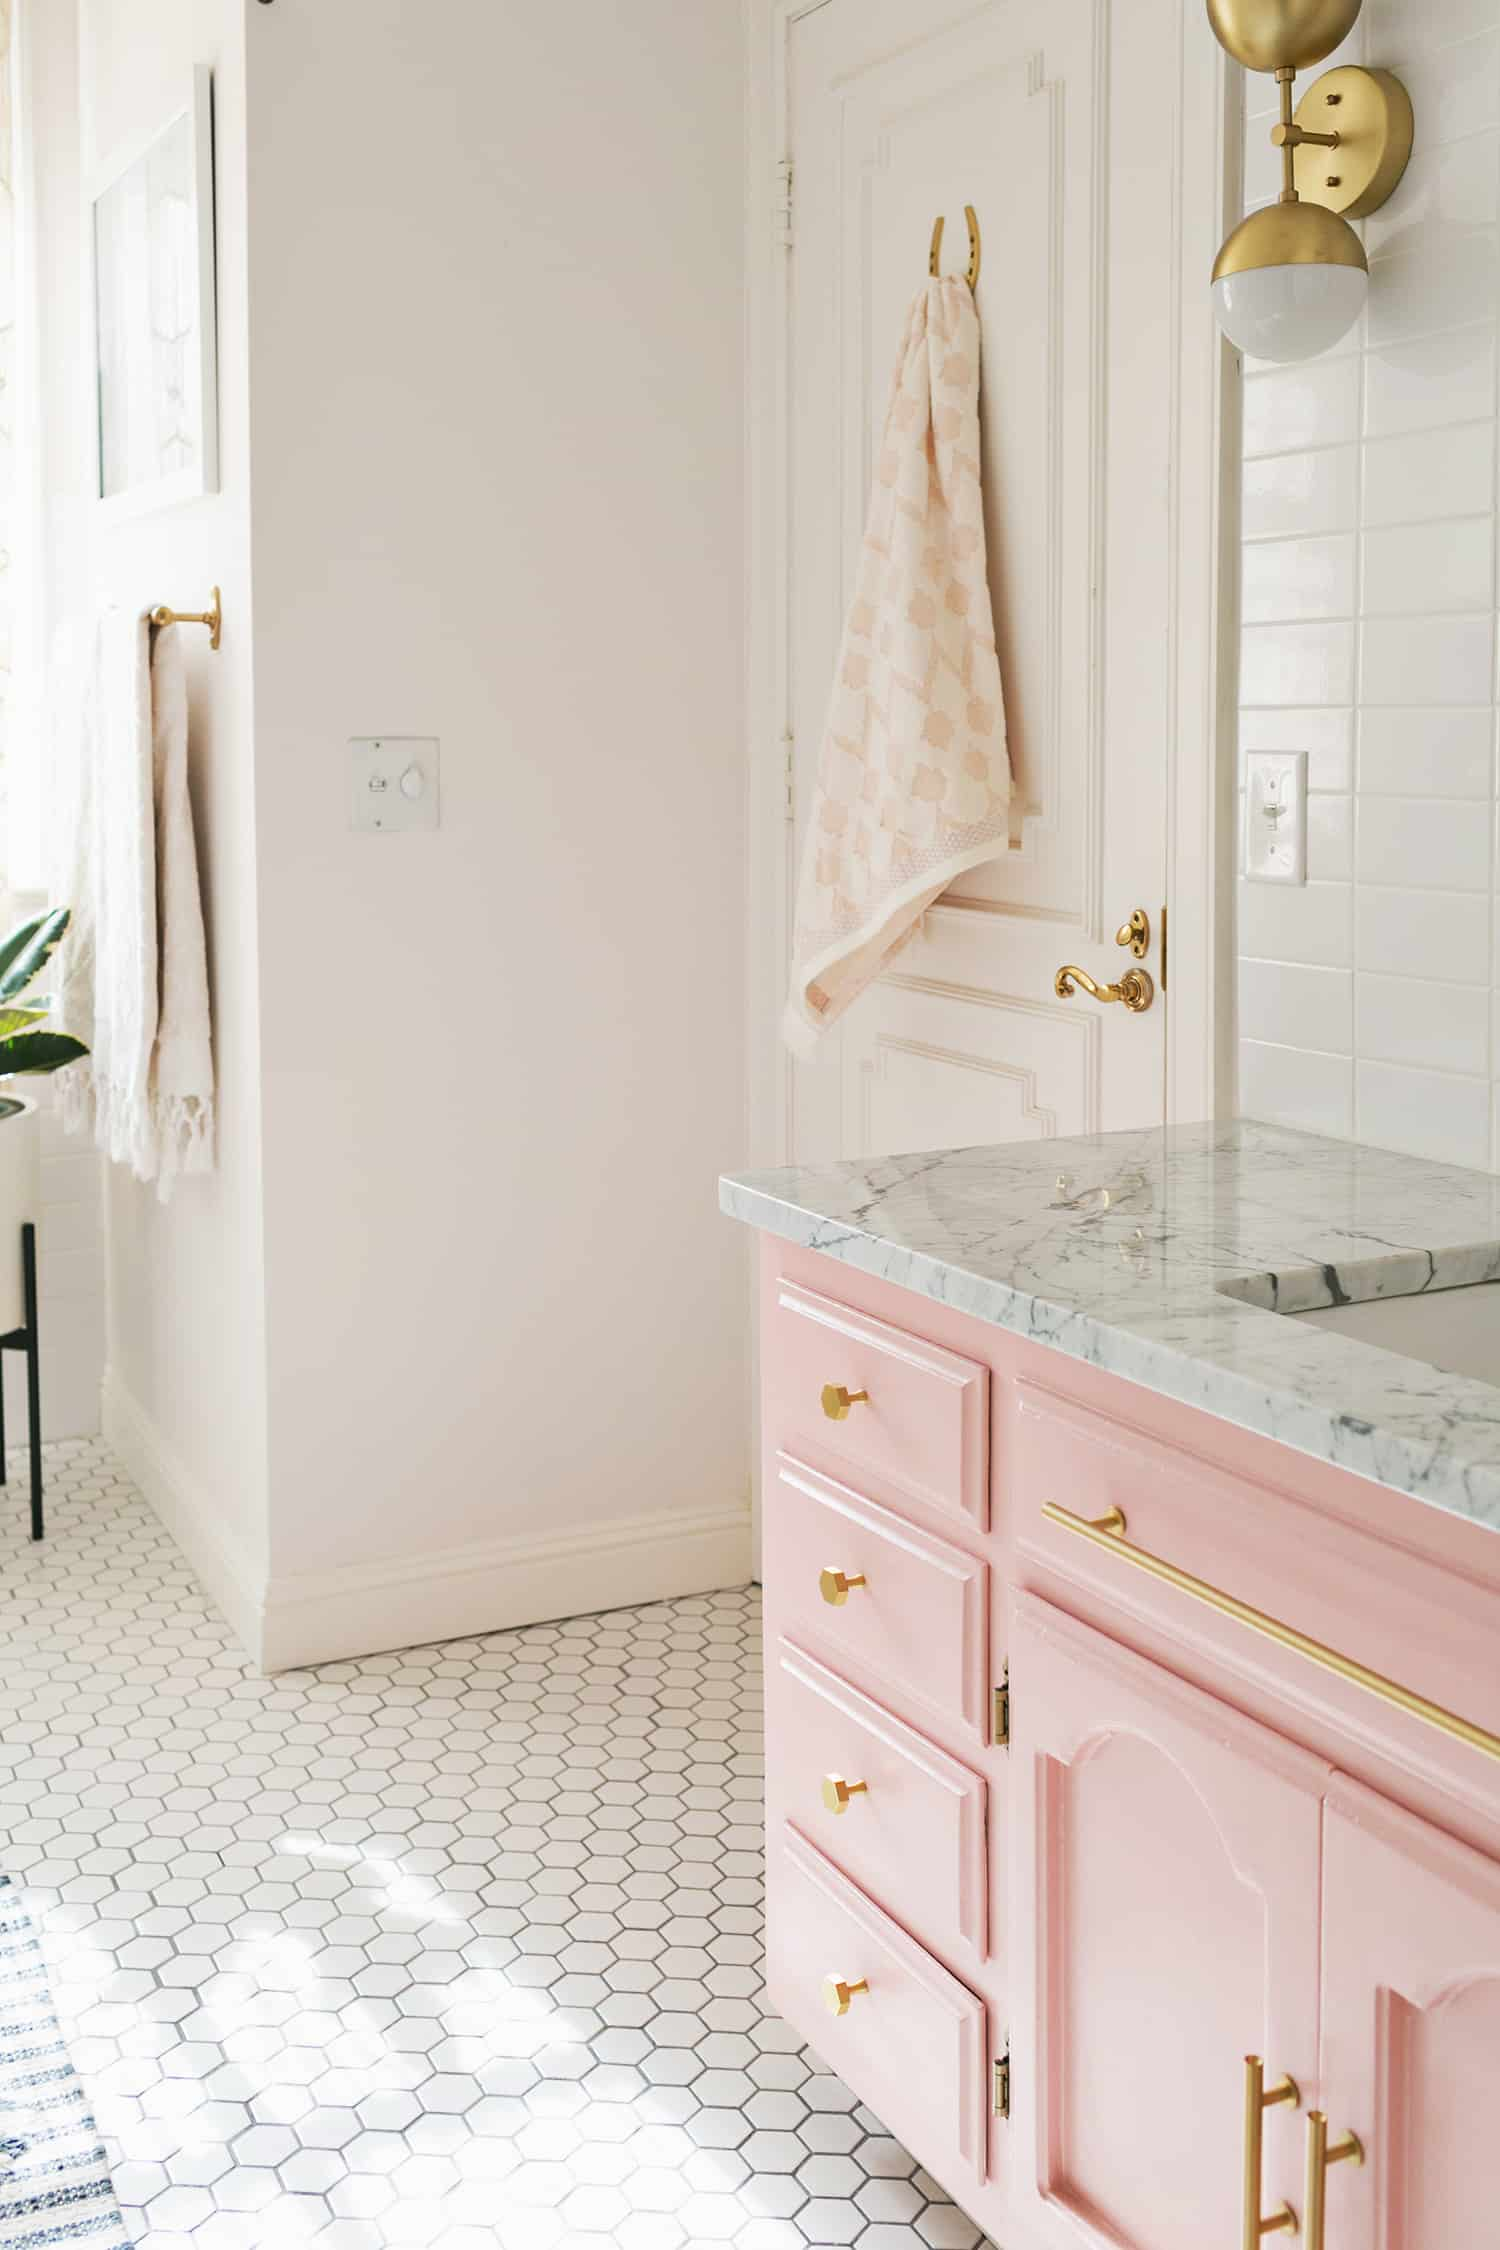 Elsie's Guest Bathroom Tour (Before + After) - A Beautiful Mess on decorating styles 1930 s, tile desgins 1930 s, bathroom tile designs from 1930,